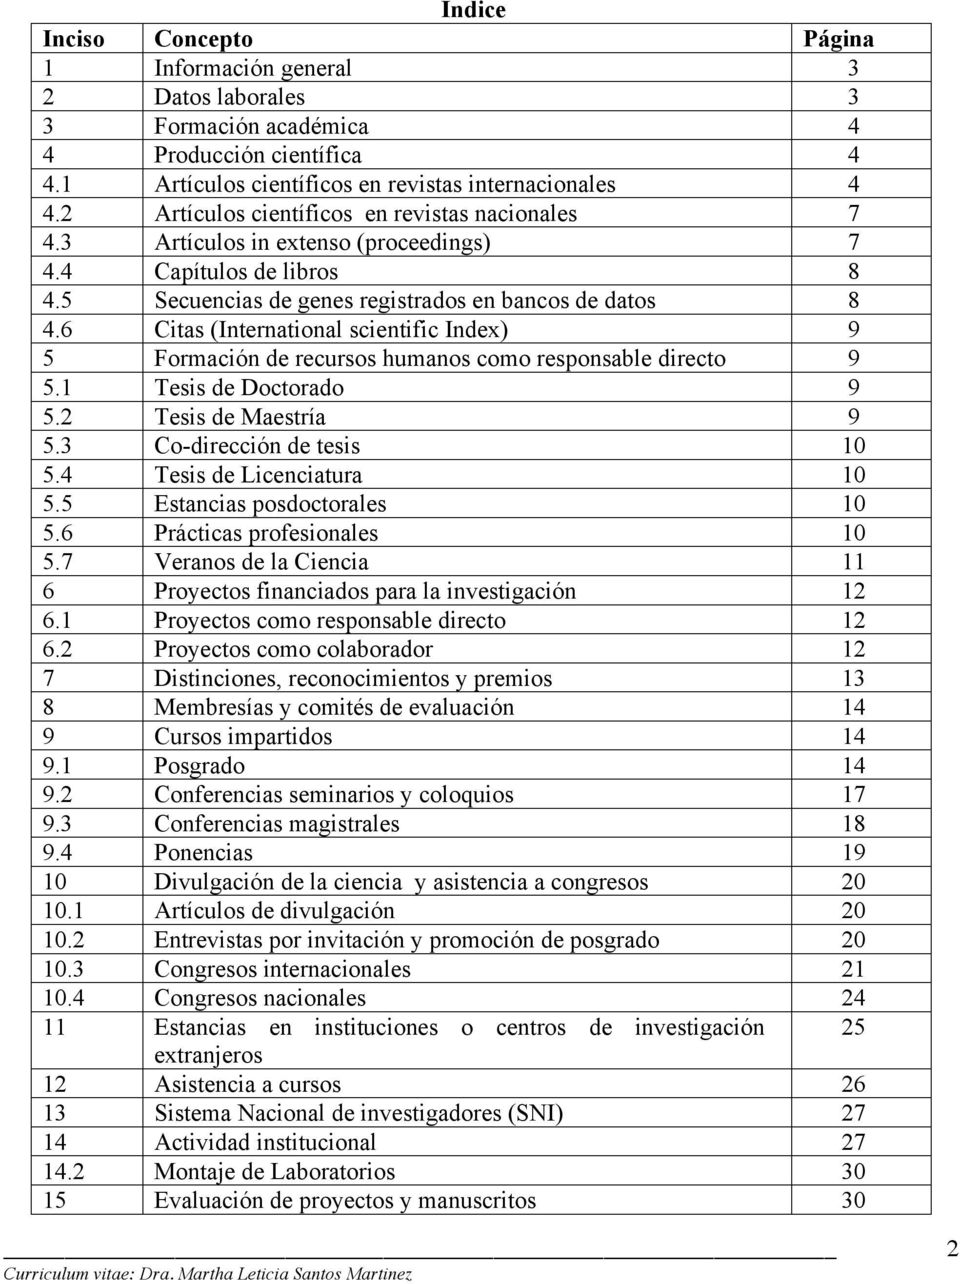 6 Citas (International scientific Index) 9 5 Formación de recursos humanos como responsable directo 9 5.1 Tesis de Doctorado 9 5.2 Tesis de Maestría 9 5.3 Co-dirección de tesis 10 5.